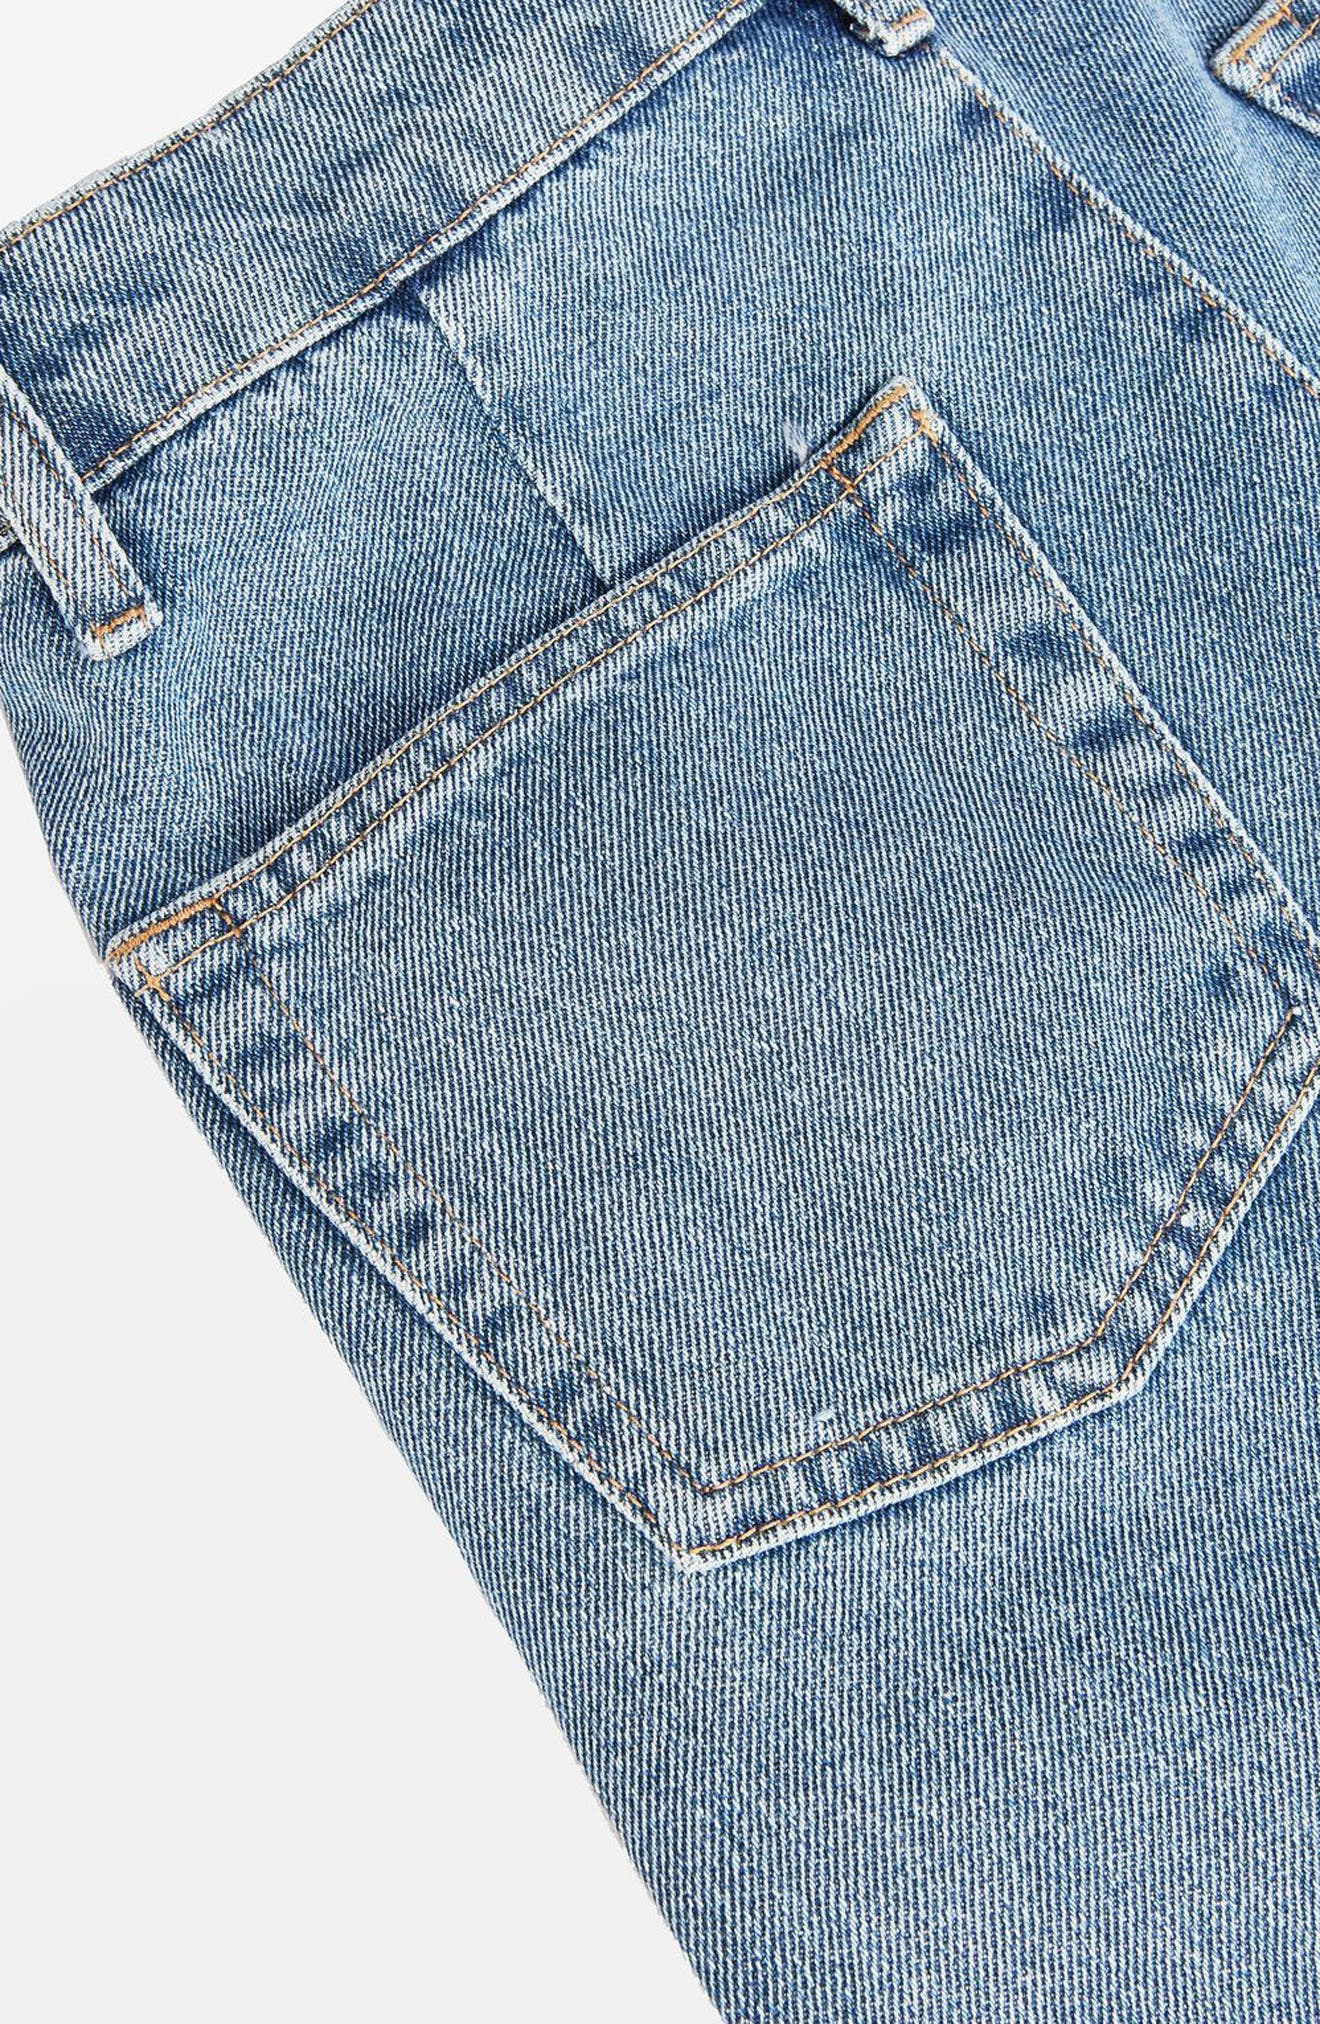 Displaced Seam Boyfriend Jeans,                             Alternate thumbnail 5, color,                             400